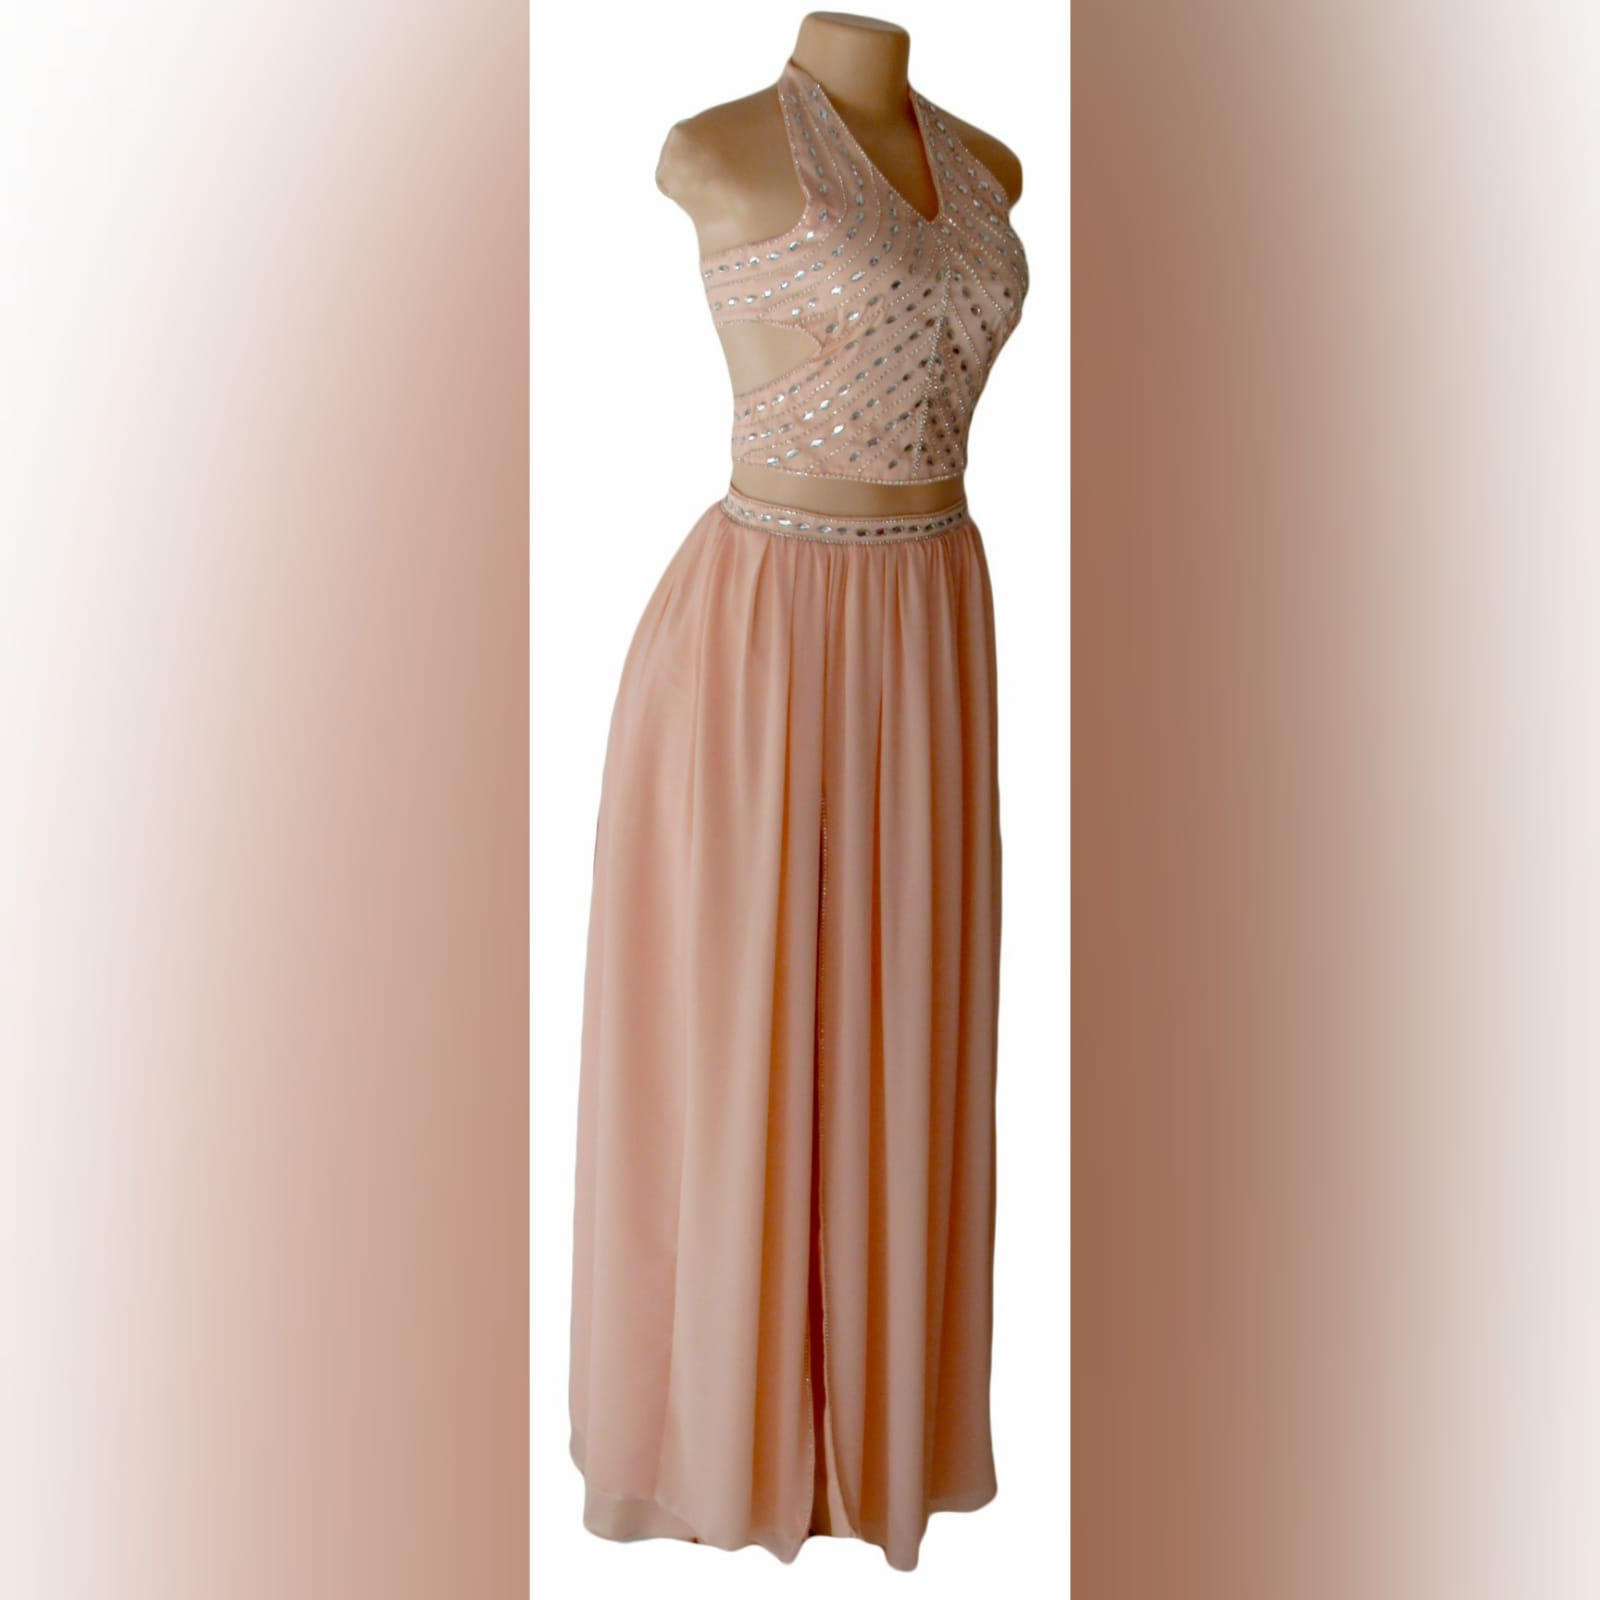 Pink nude 2 piece prom dress 7 pink nude 2 piece prom dress with crop top open on the sides, halter neck creating a v neckline with a naked back detailed with straps. Top detailed with patterned silver beading. Flowy long skirt with a slit and waistband detailed with silver beads.